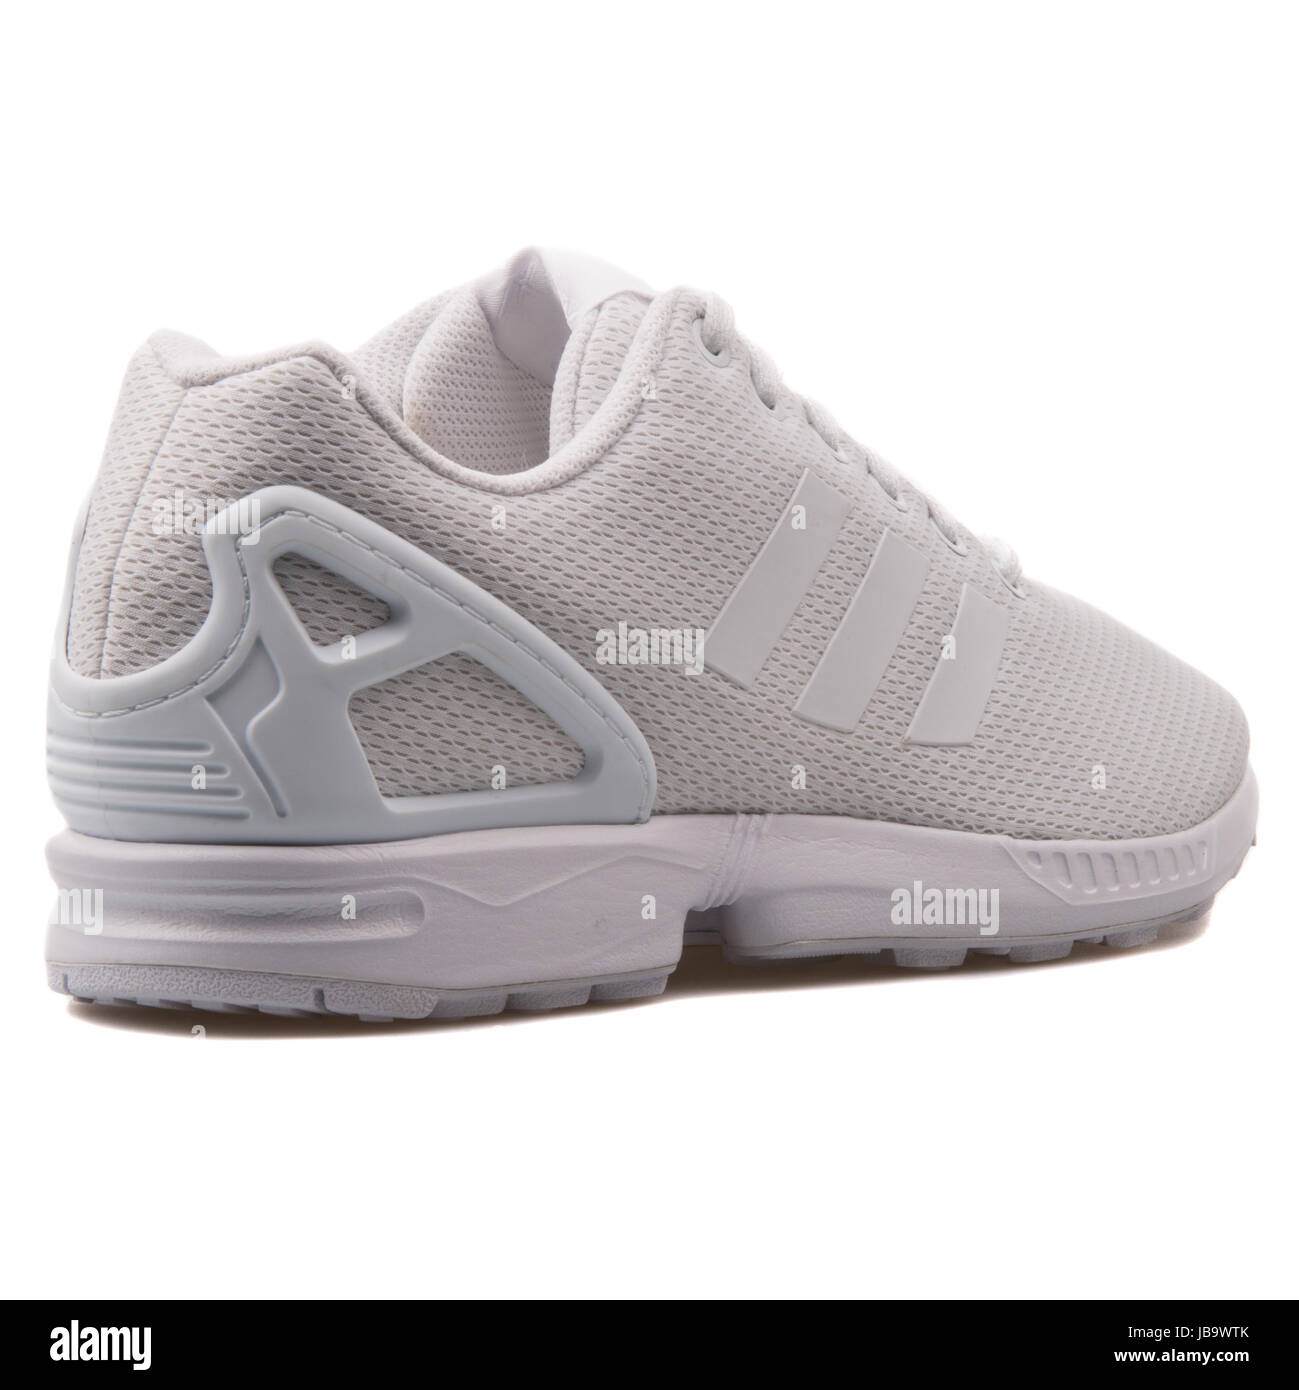 188e26526637e Adidas ZX Flux White Mesh Men s Running Shoes - AF6403 - Stock Image